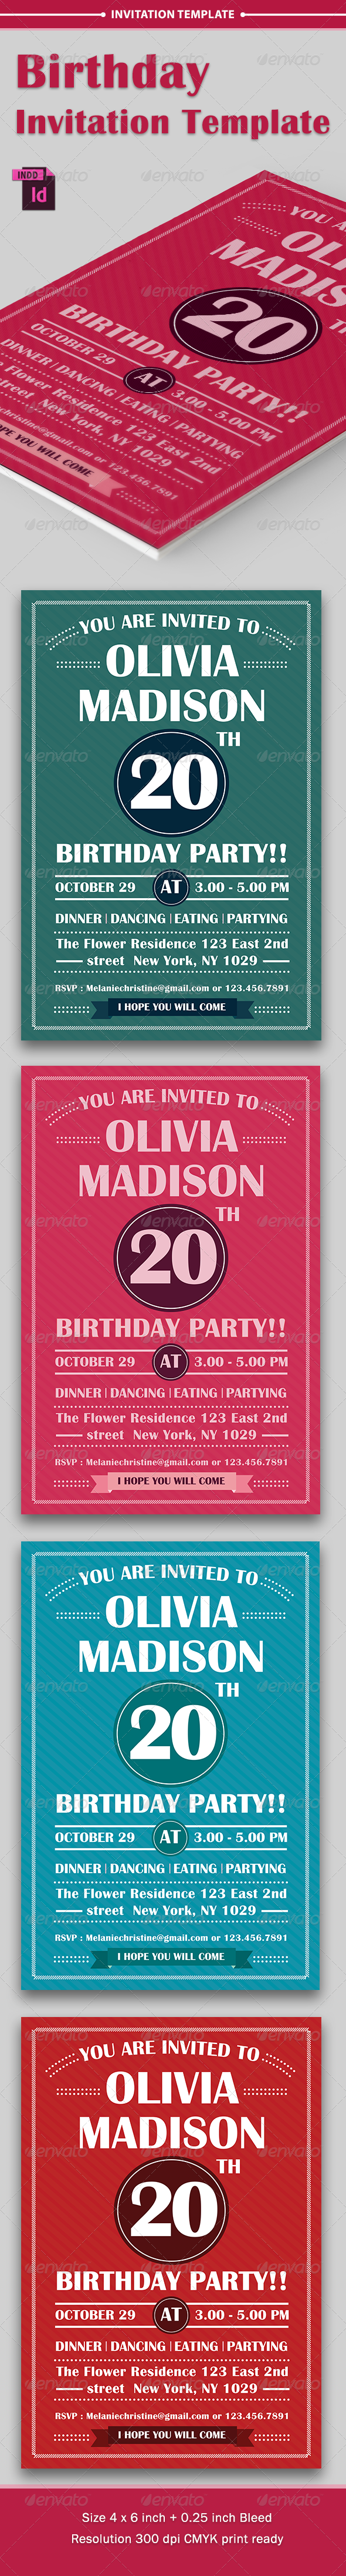 GraphicRiver Birthday Party Invitation Template Vol 2 8207863